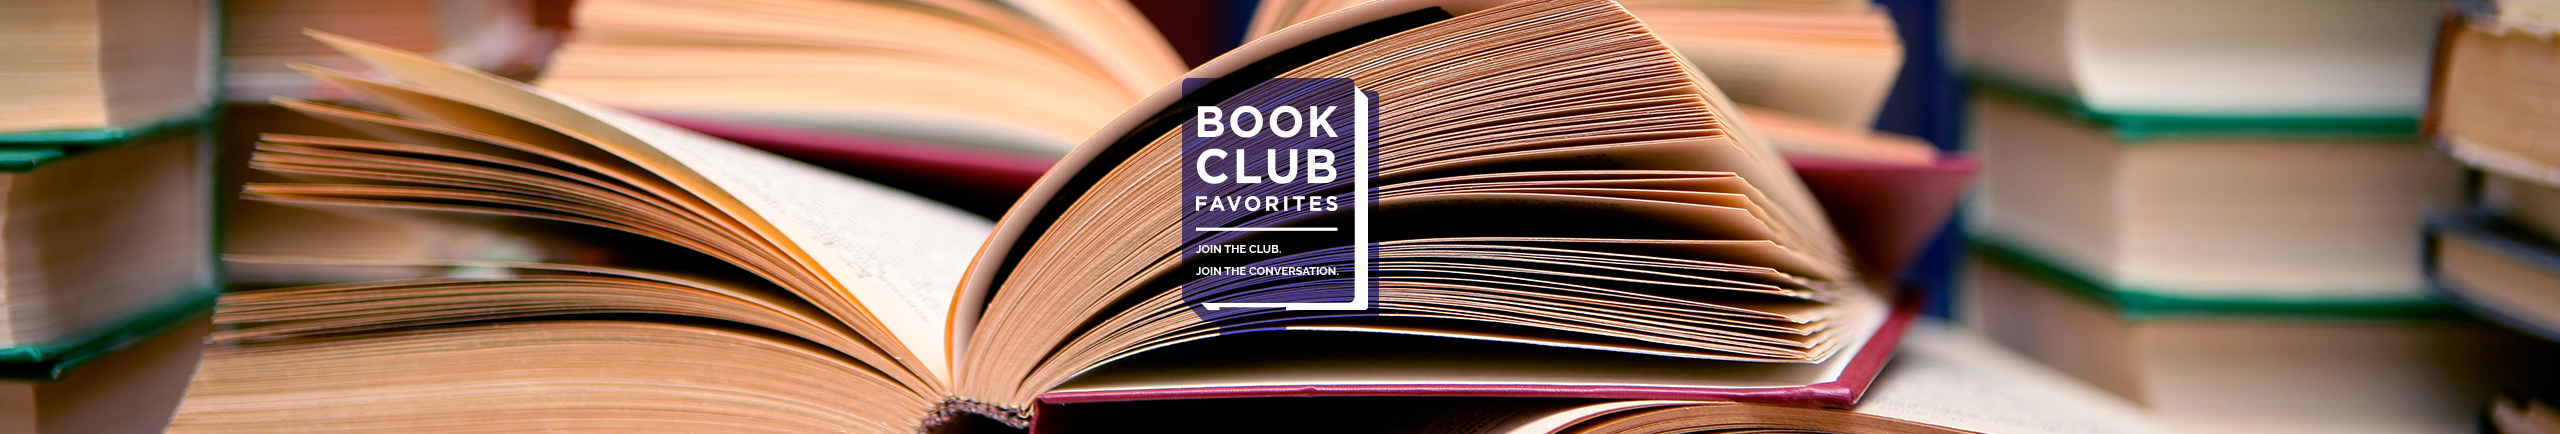 Welcome to Book Club Favorites!